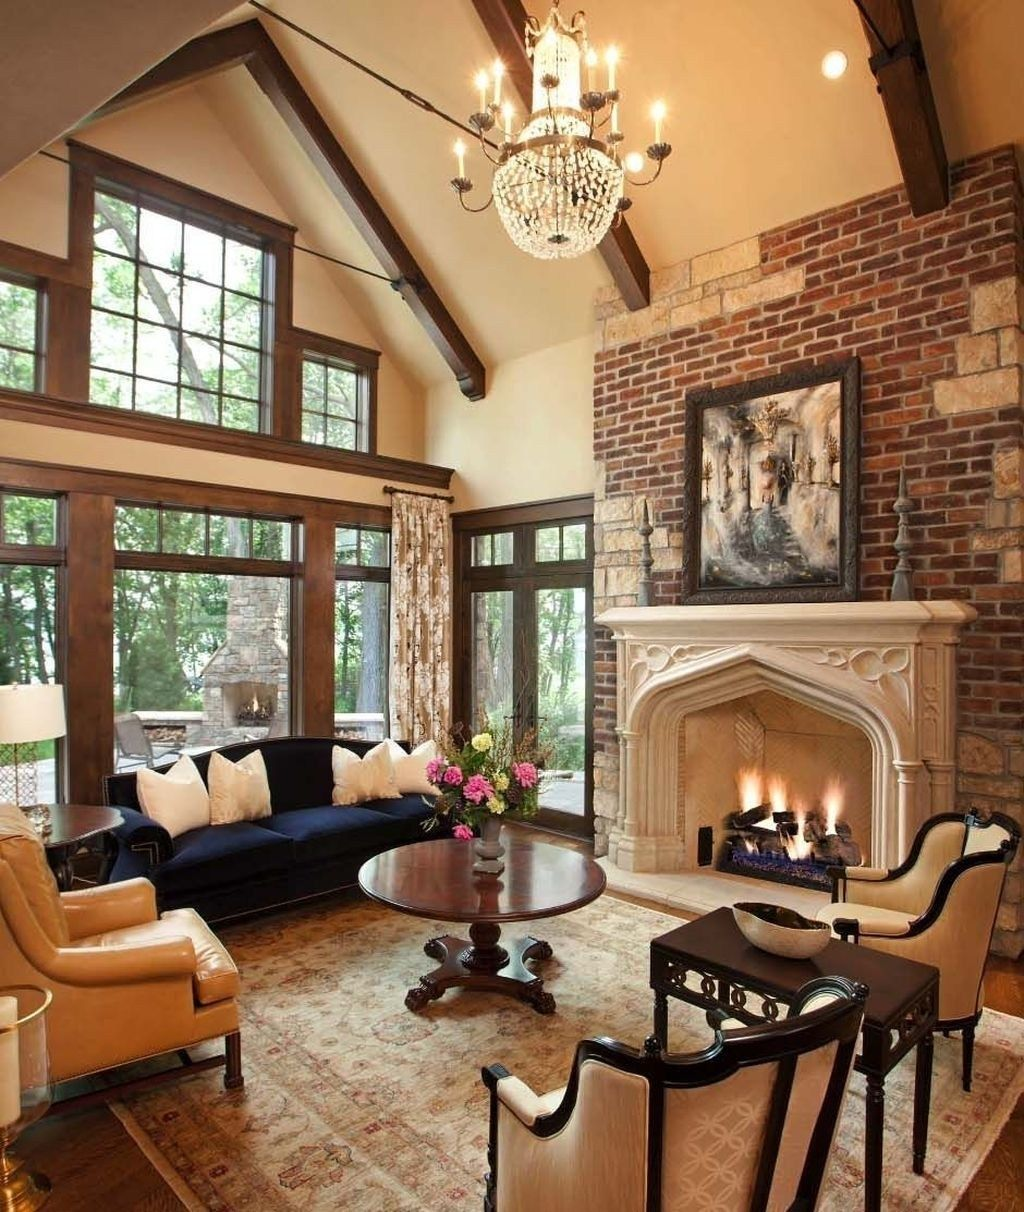 Rustic Traditional Living Room Ideas For This Winter 34 Vaulted Living Rooms Cottage Living Rooms Winter Living Room #traditional #living #room #decorating #ideas